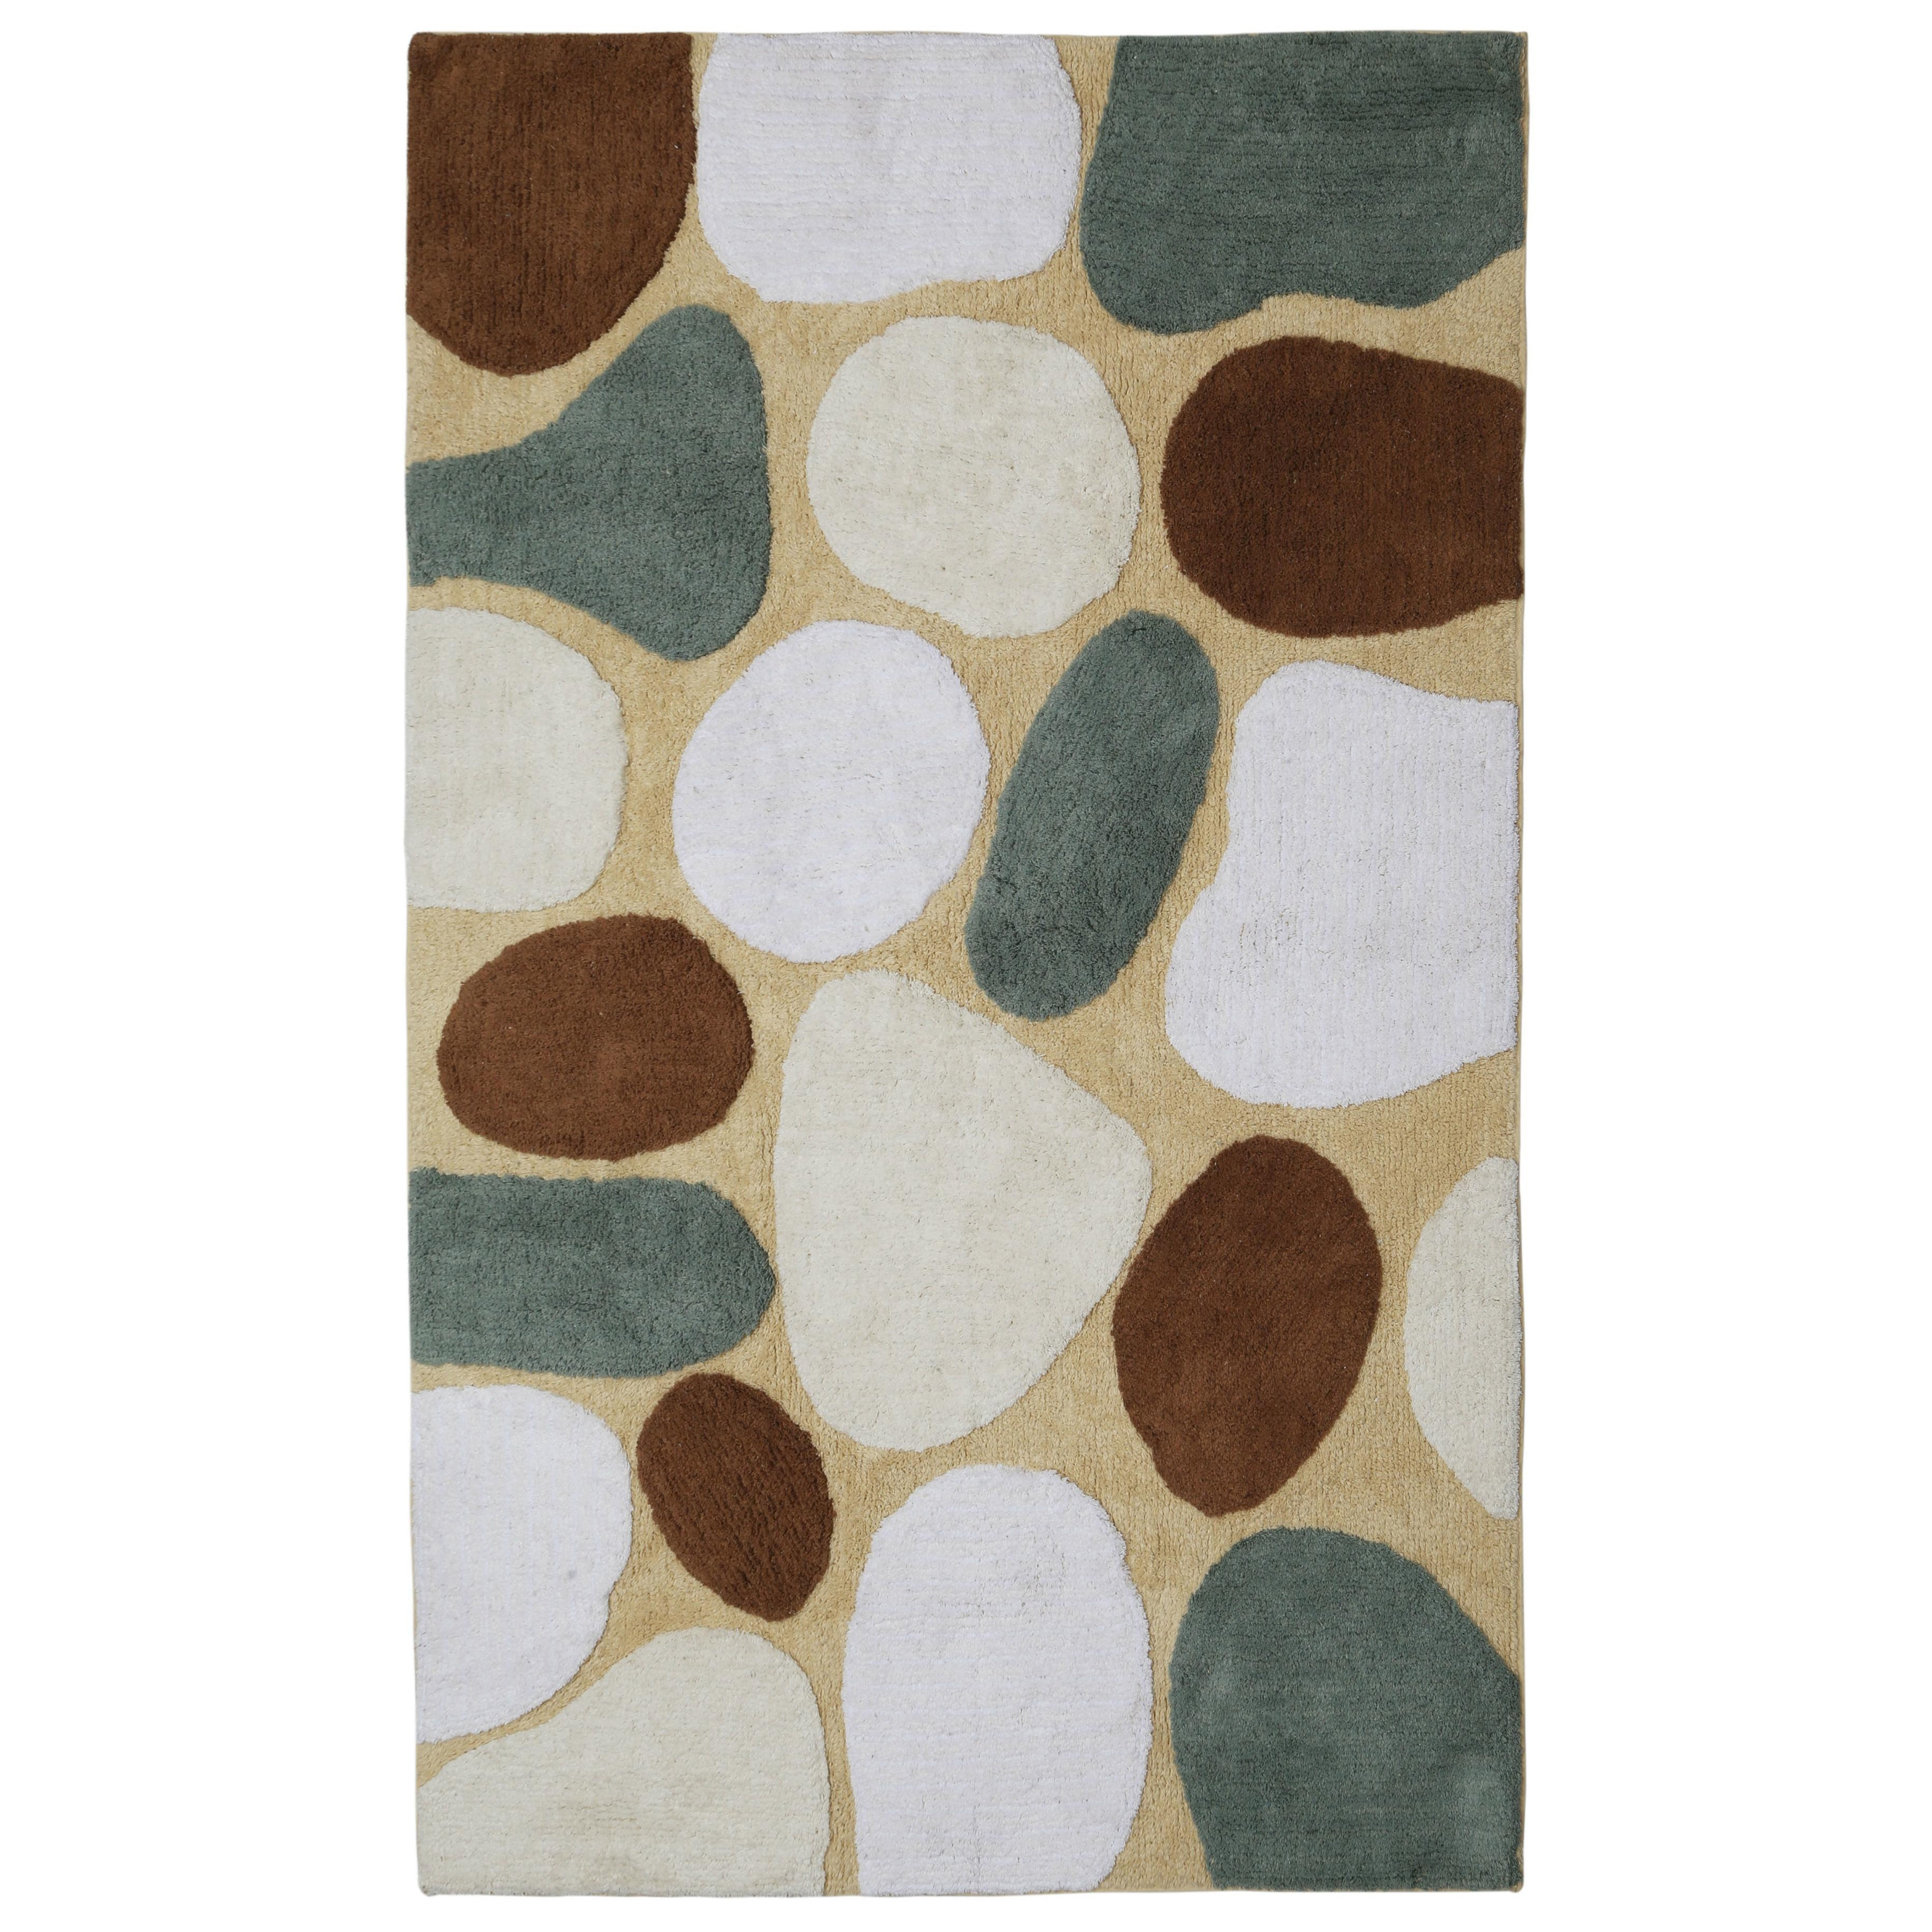 "Shop Tan Pebble Beach Bath Rug (30""x50"") - 30 x 50 - On Sale - Free Shipping Today - Overstock.com - 11820160"